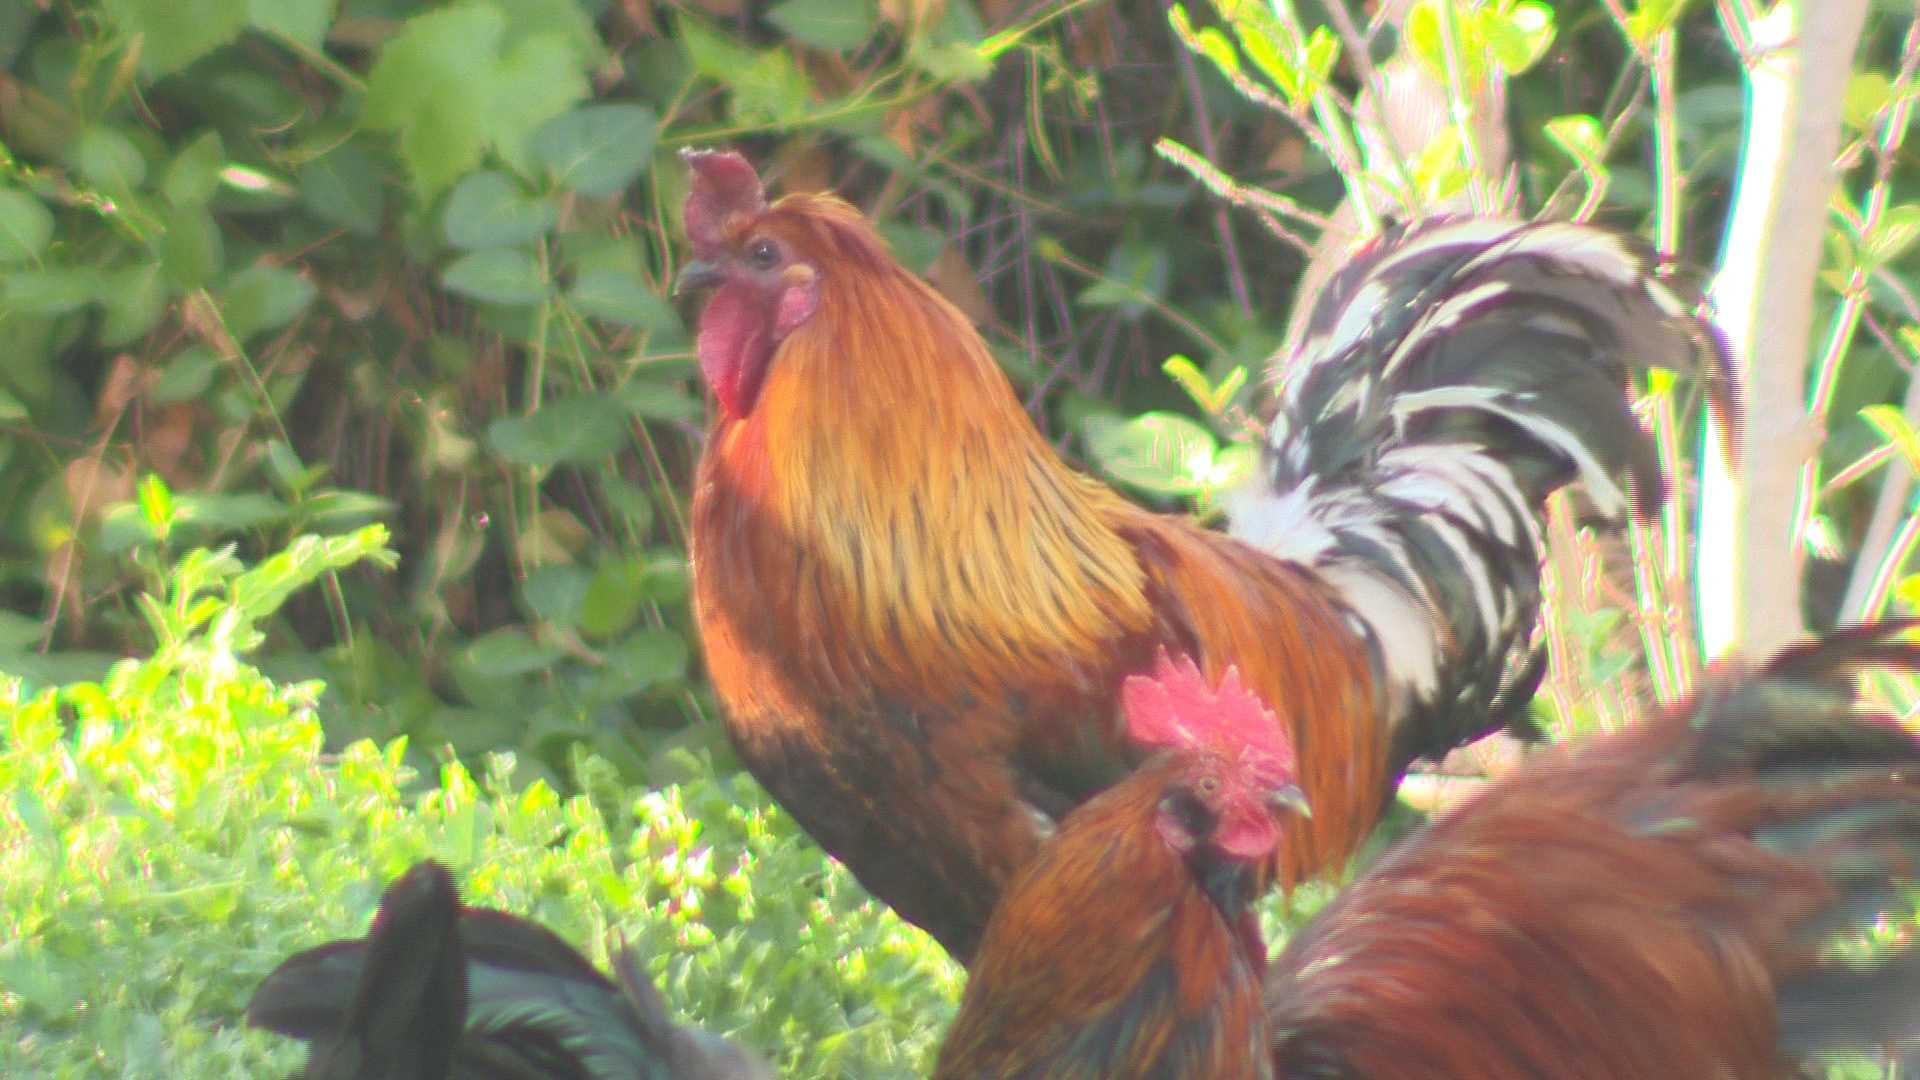 Sacramento County leaders say a proposed rooster ban would not apply to the free-roaming chickens of Fair Oaks.